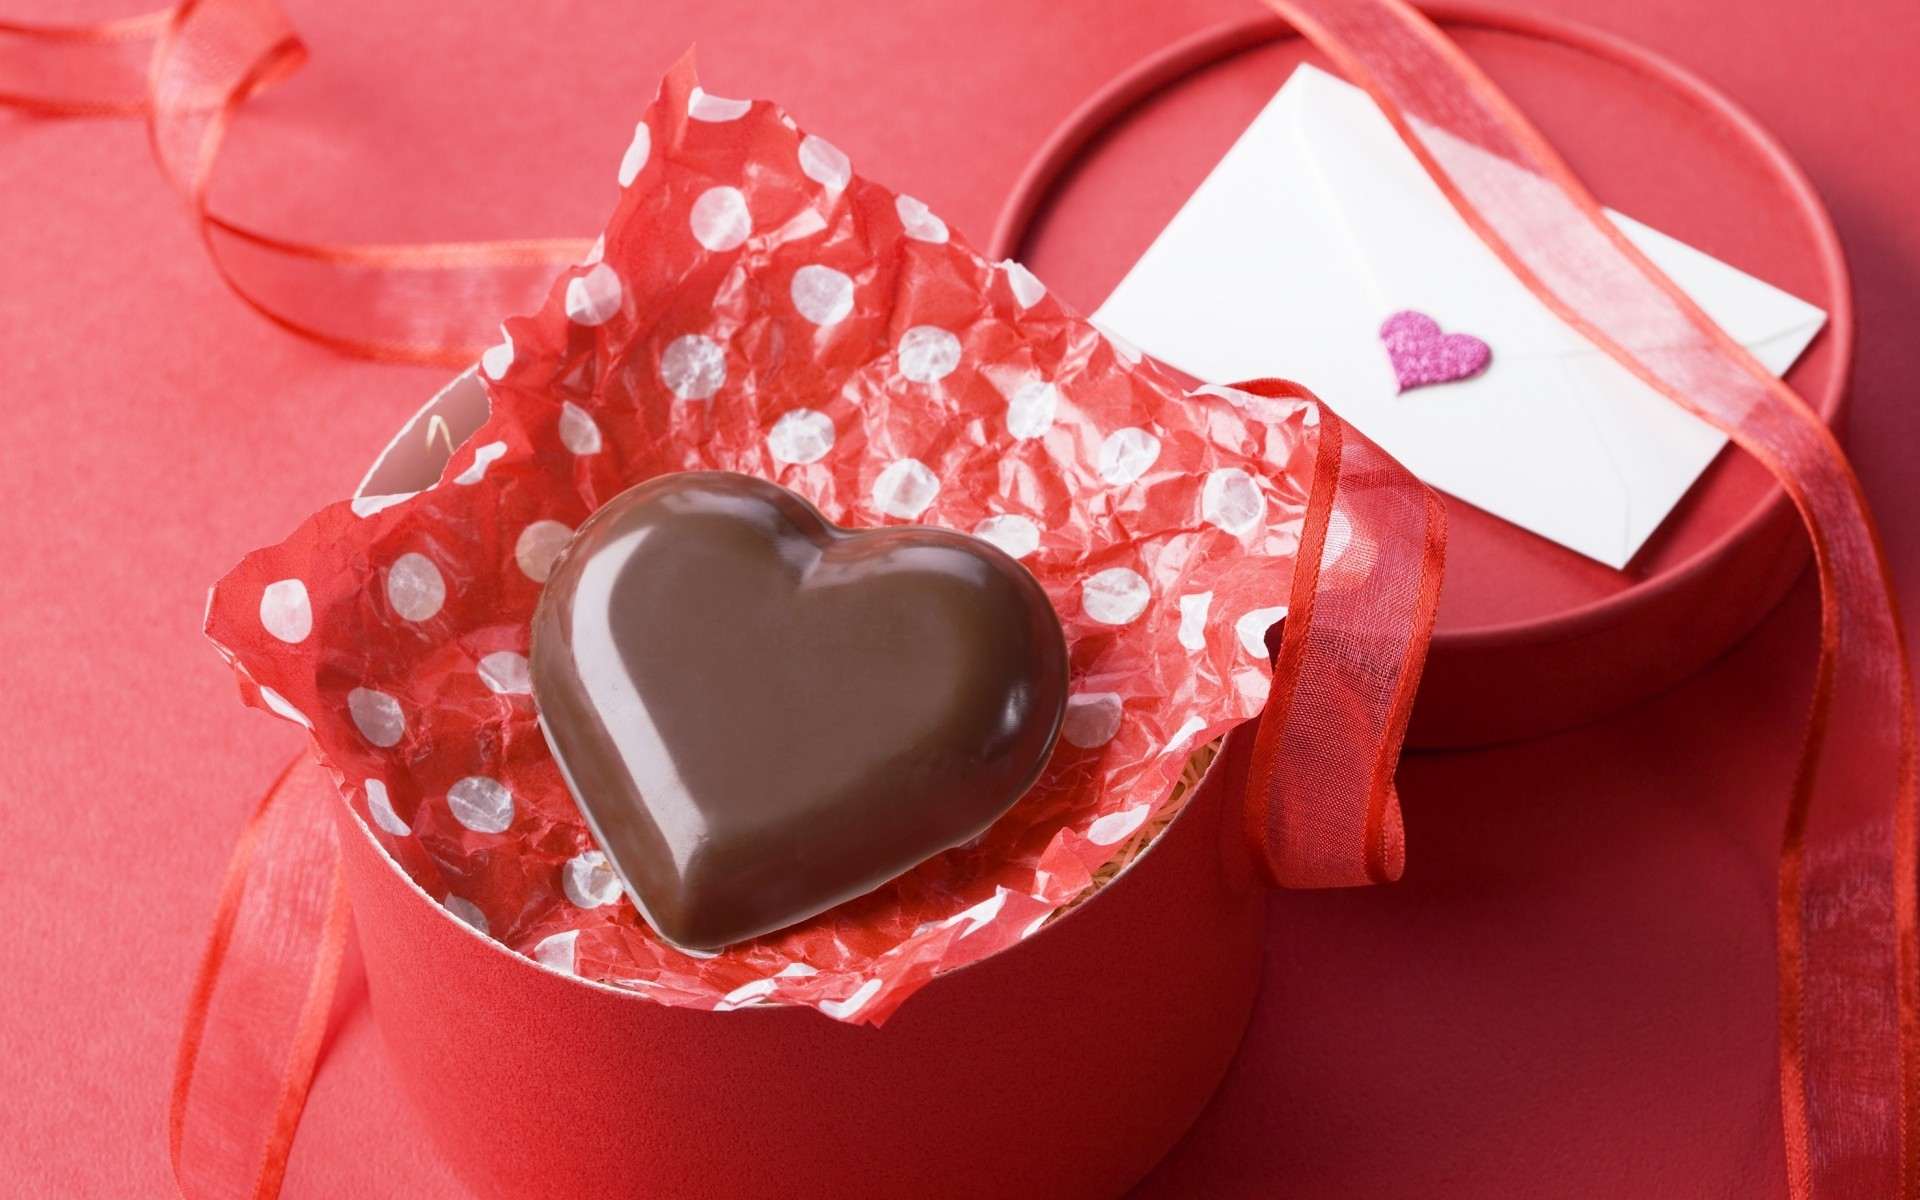 28480 download wallpaper Holidays, Food, Hearts, Chocolate, Love, Valentine's Day screensavers and pictures for free